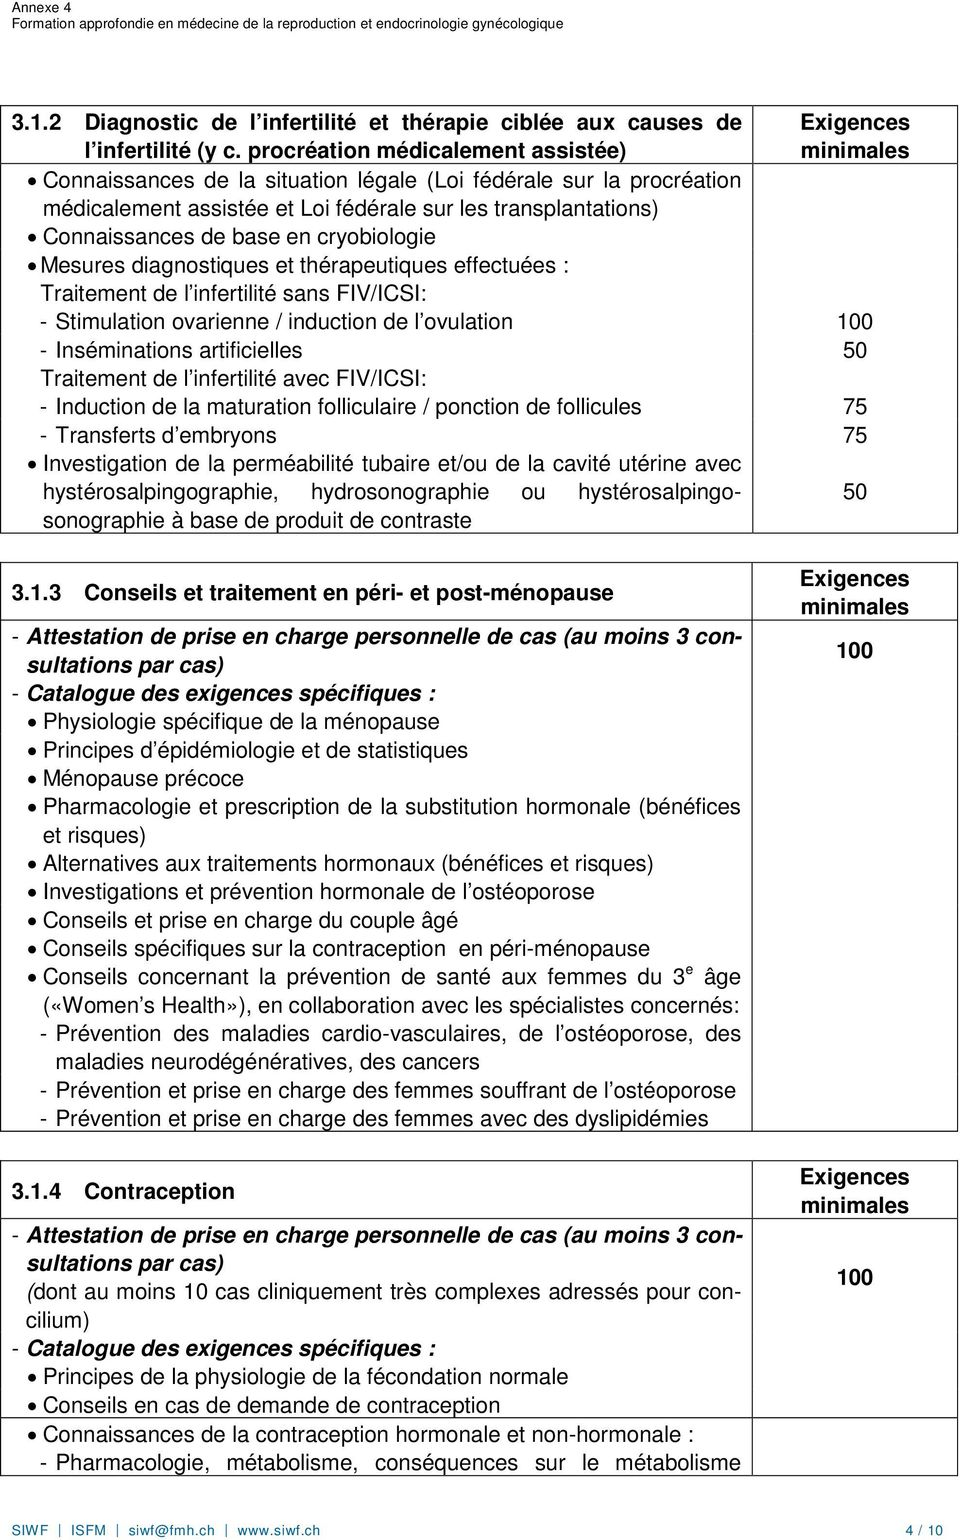 cryobiologie Mesures diagnostiques et thérapeutiques effectuées : Traitement de l infertilité sans FIV/ICSI: - Stimulation ovarienne / induction de l ovulation 100 - Inséminations artificielles 50